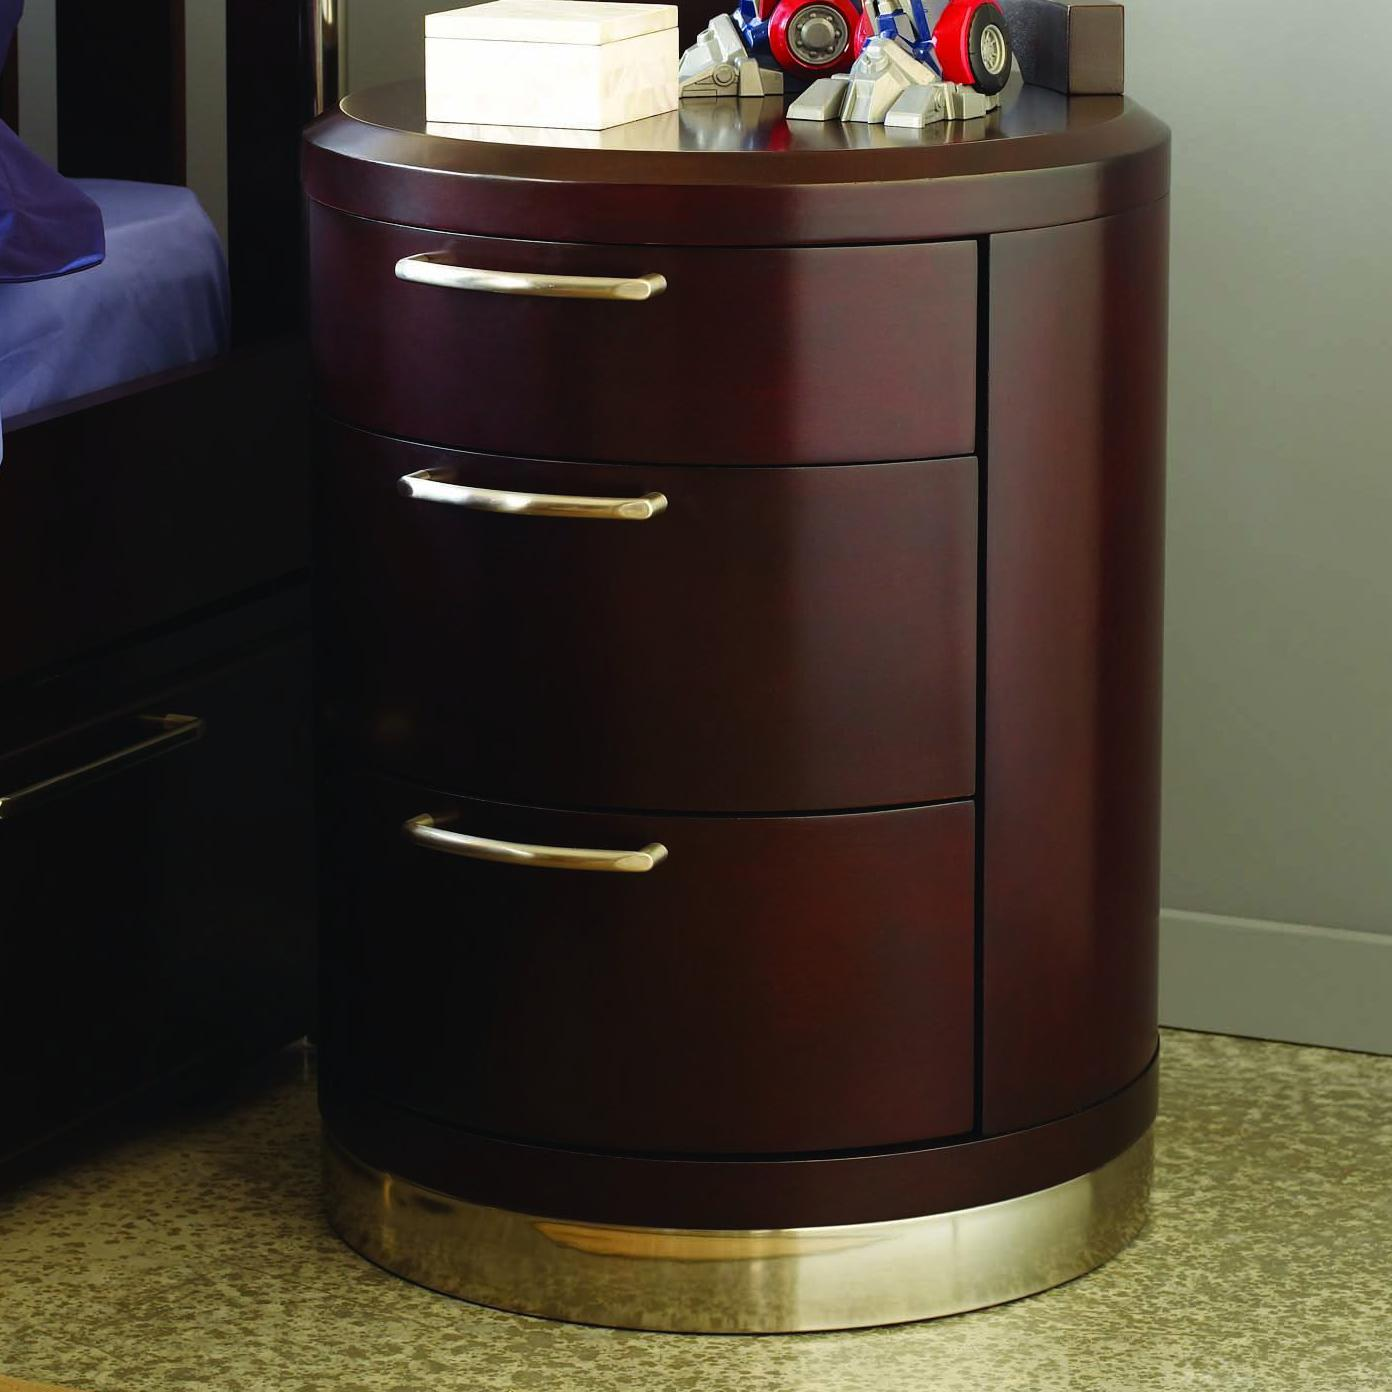 Opus Designs Aura Three Drawer Round Nightstand Ahfa Night Stand Dealer Locator